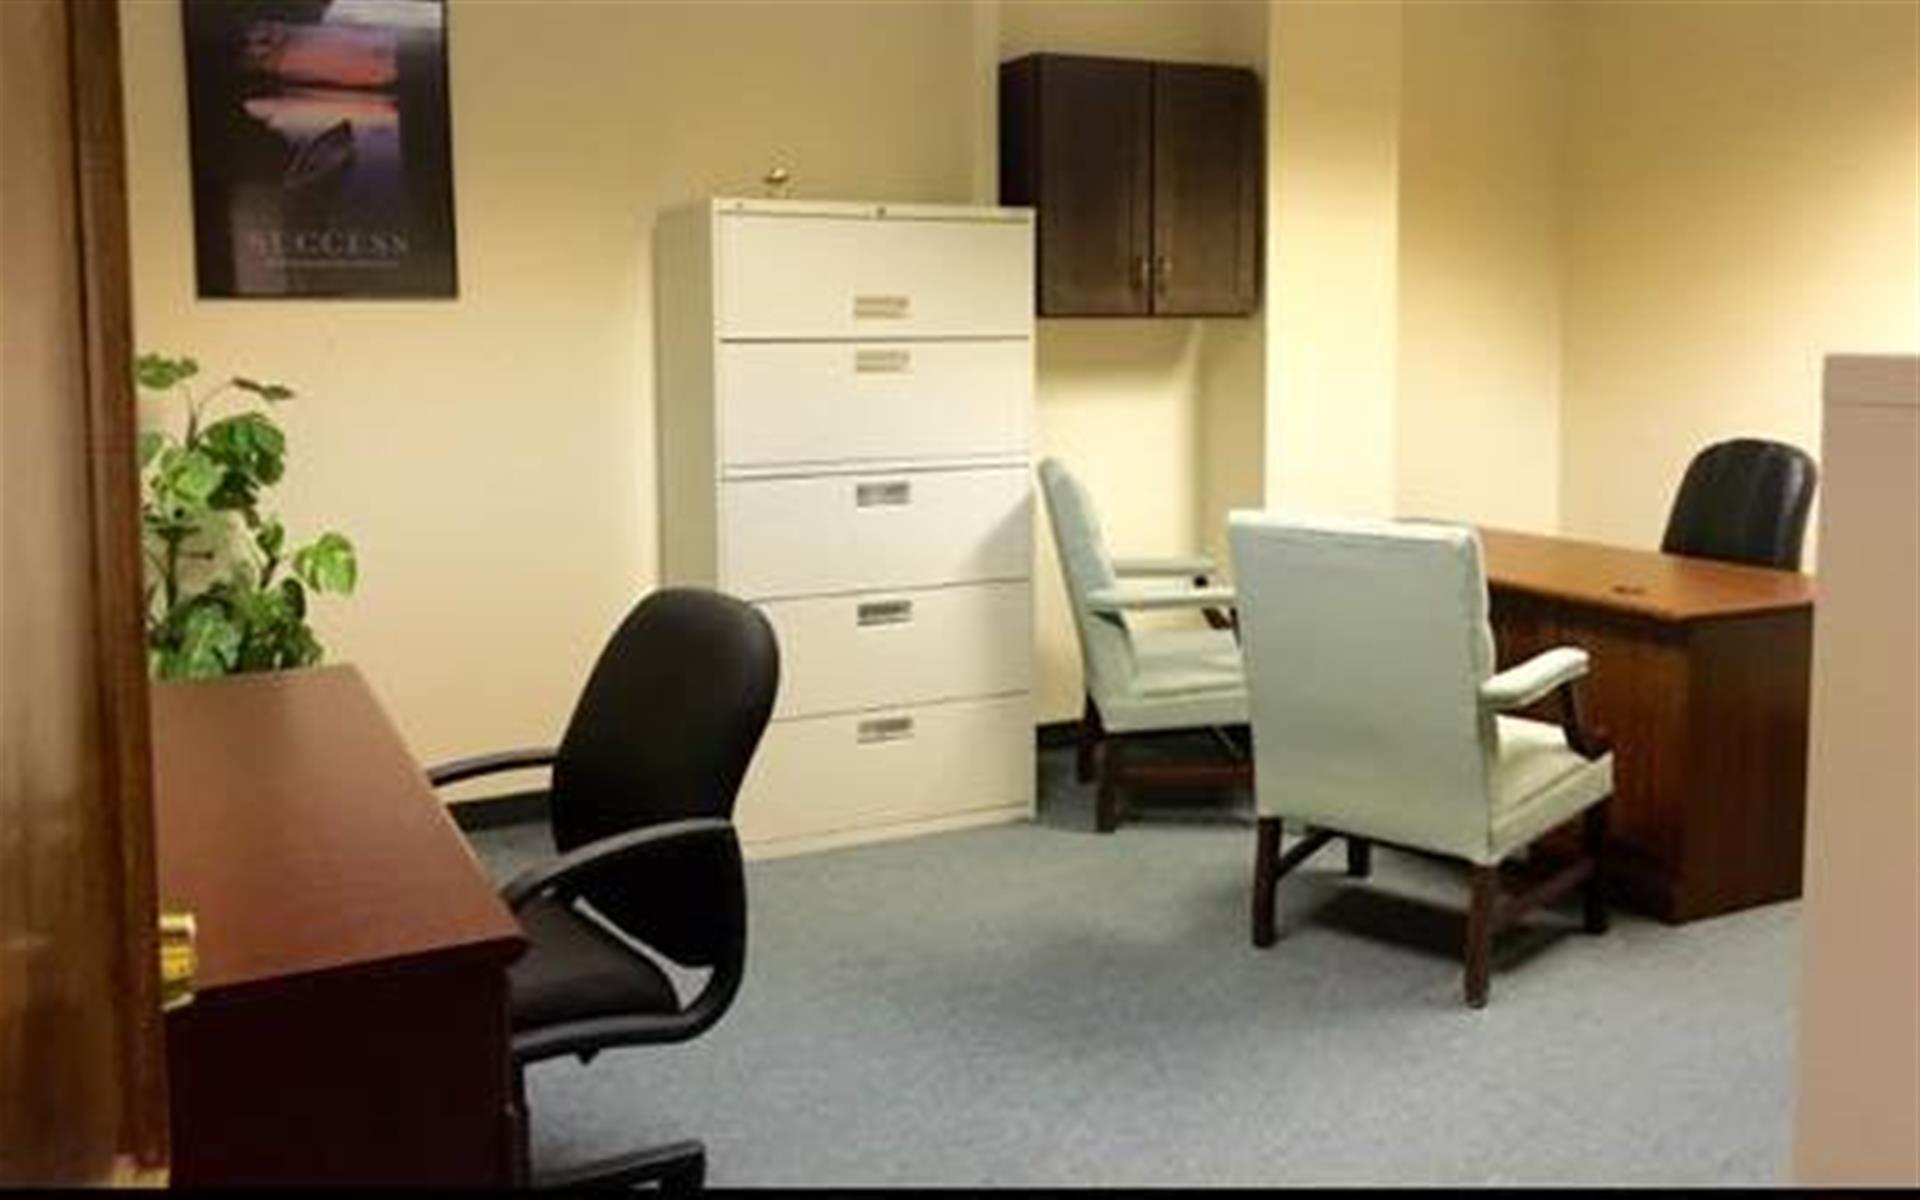 CEO Nashua, Inc. - Office #35